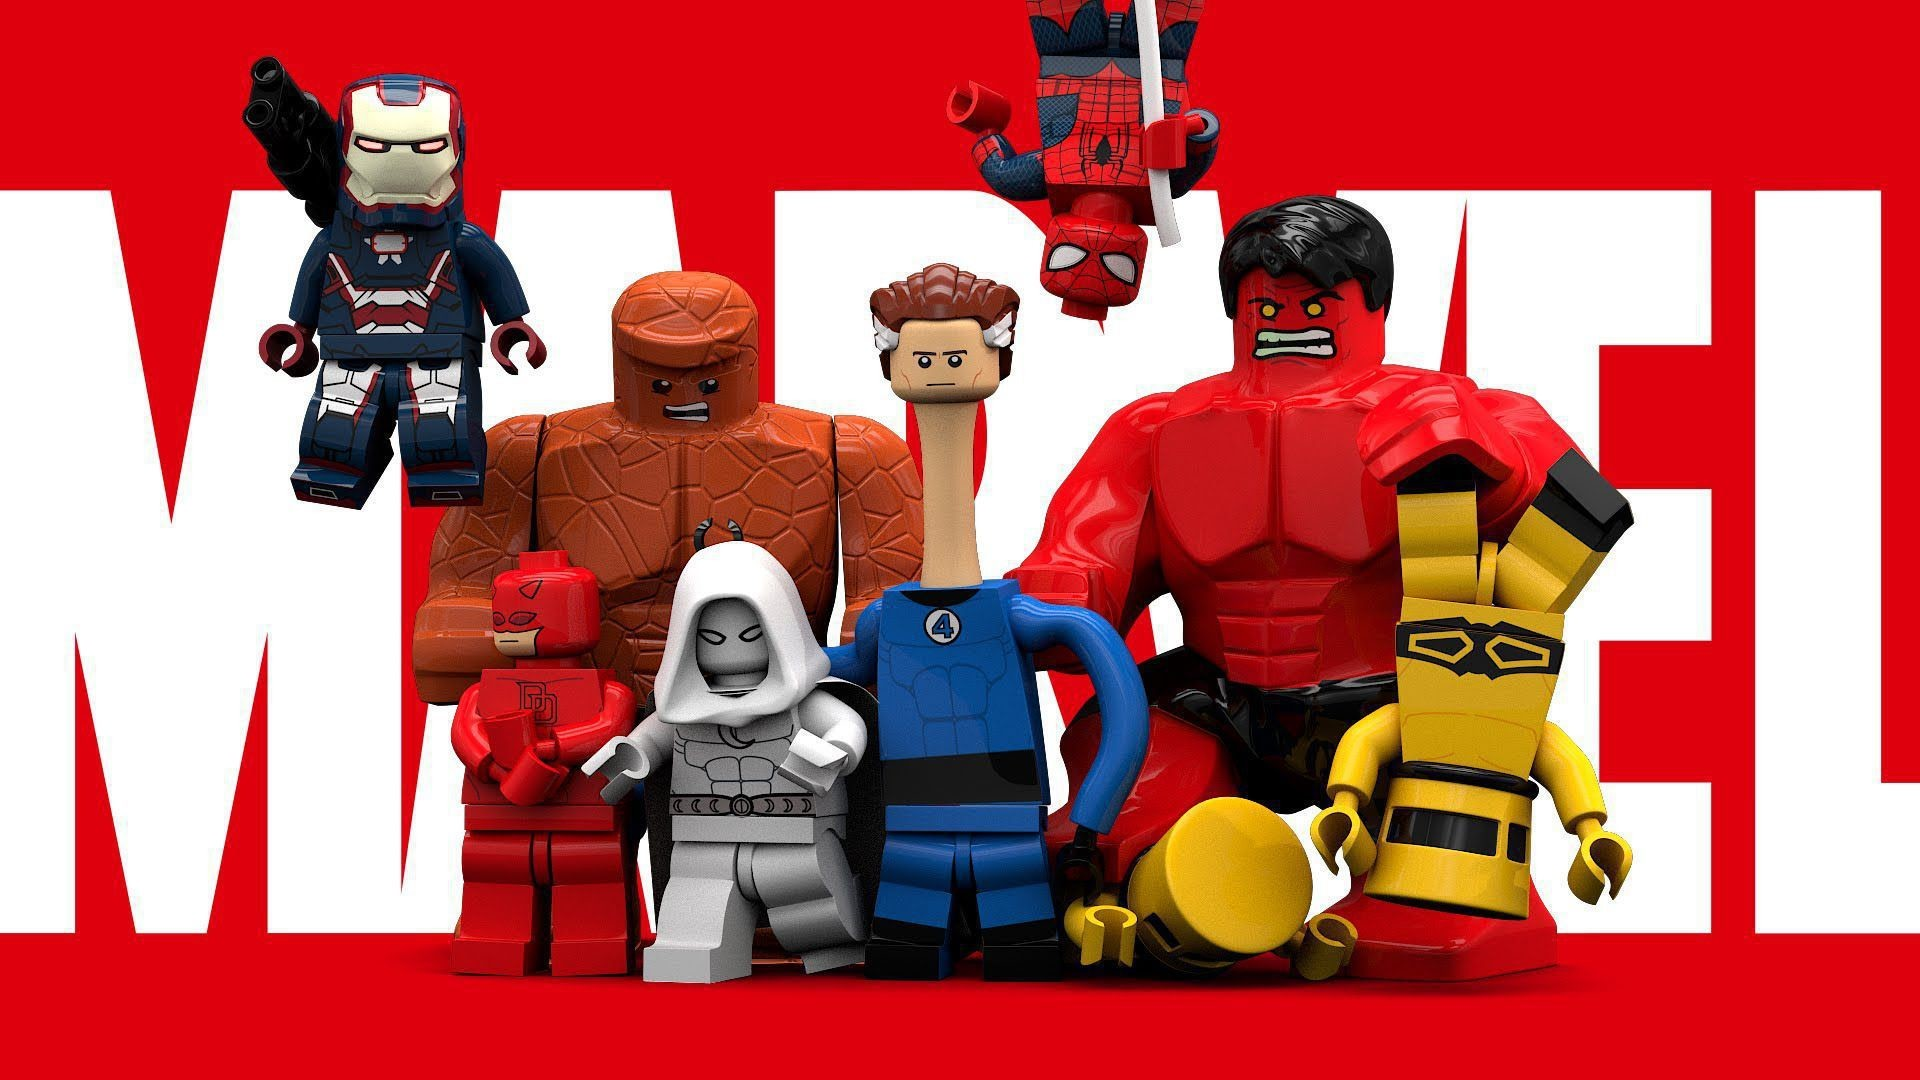 Lego avengers wallpaper hd 74 images spider man homecoming hd spider man homecoming high definition wallpapers voltagebd Gallery